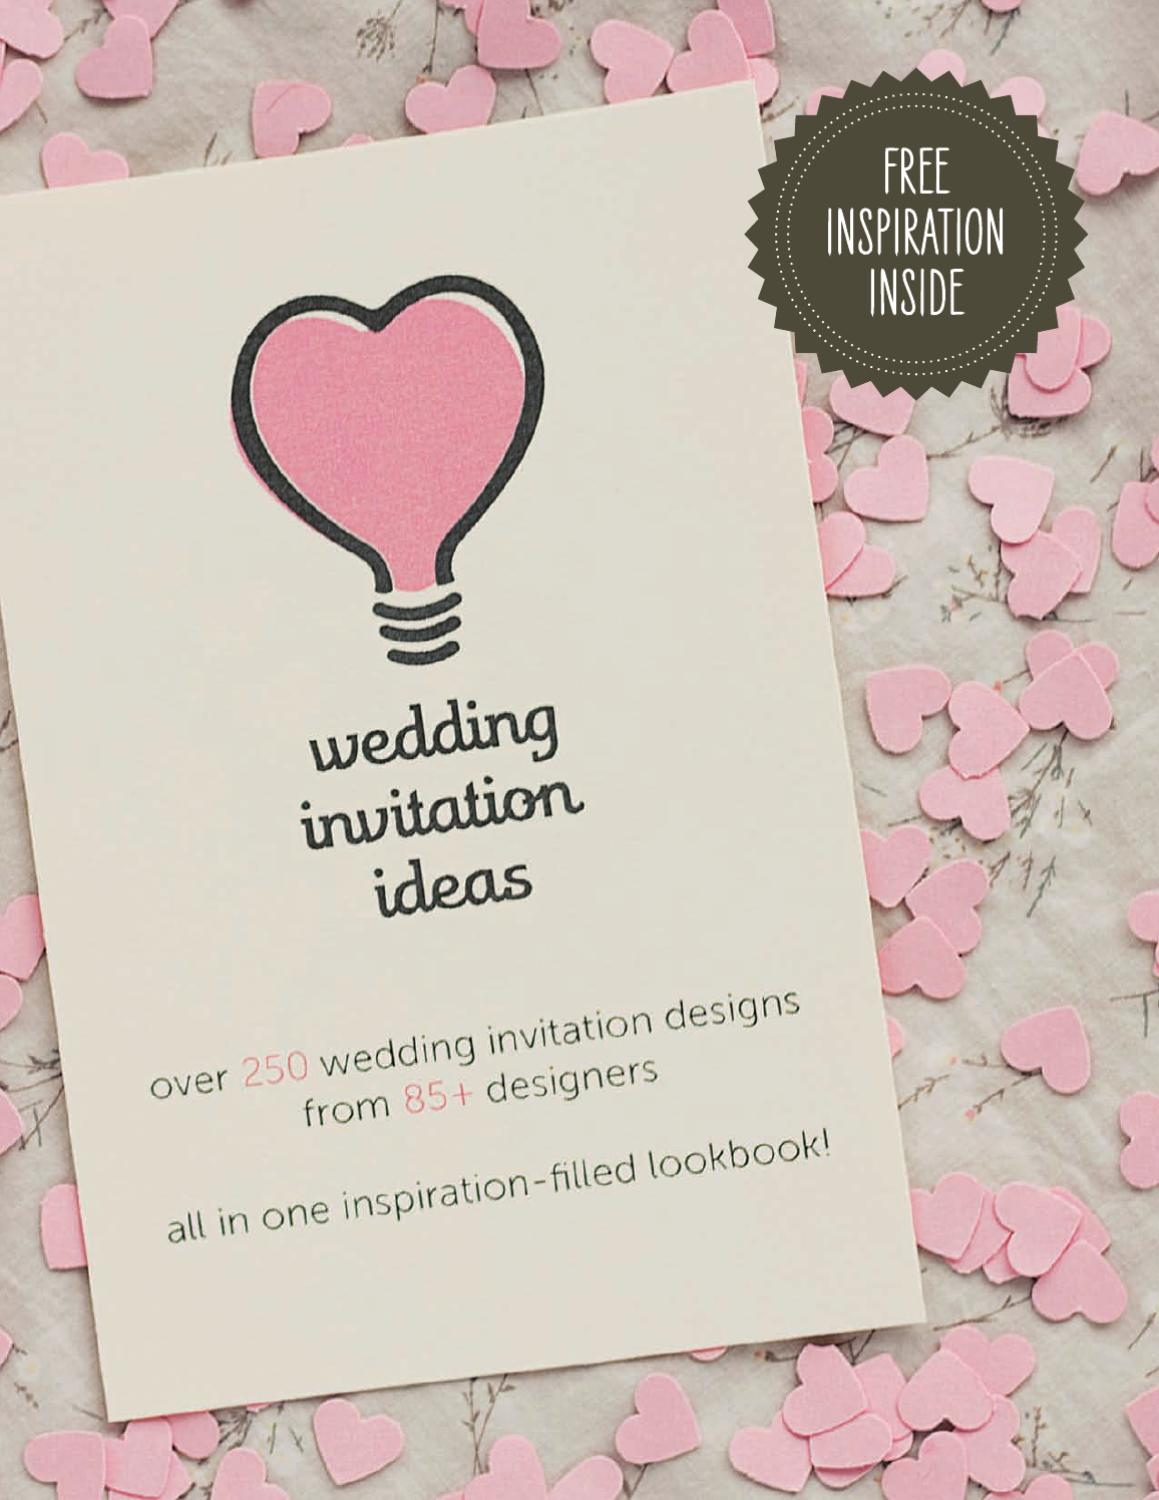 Wedding Invitation Ideas by Kristen Magee - issuu